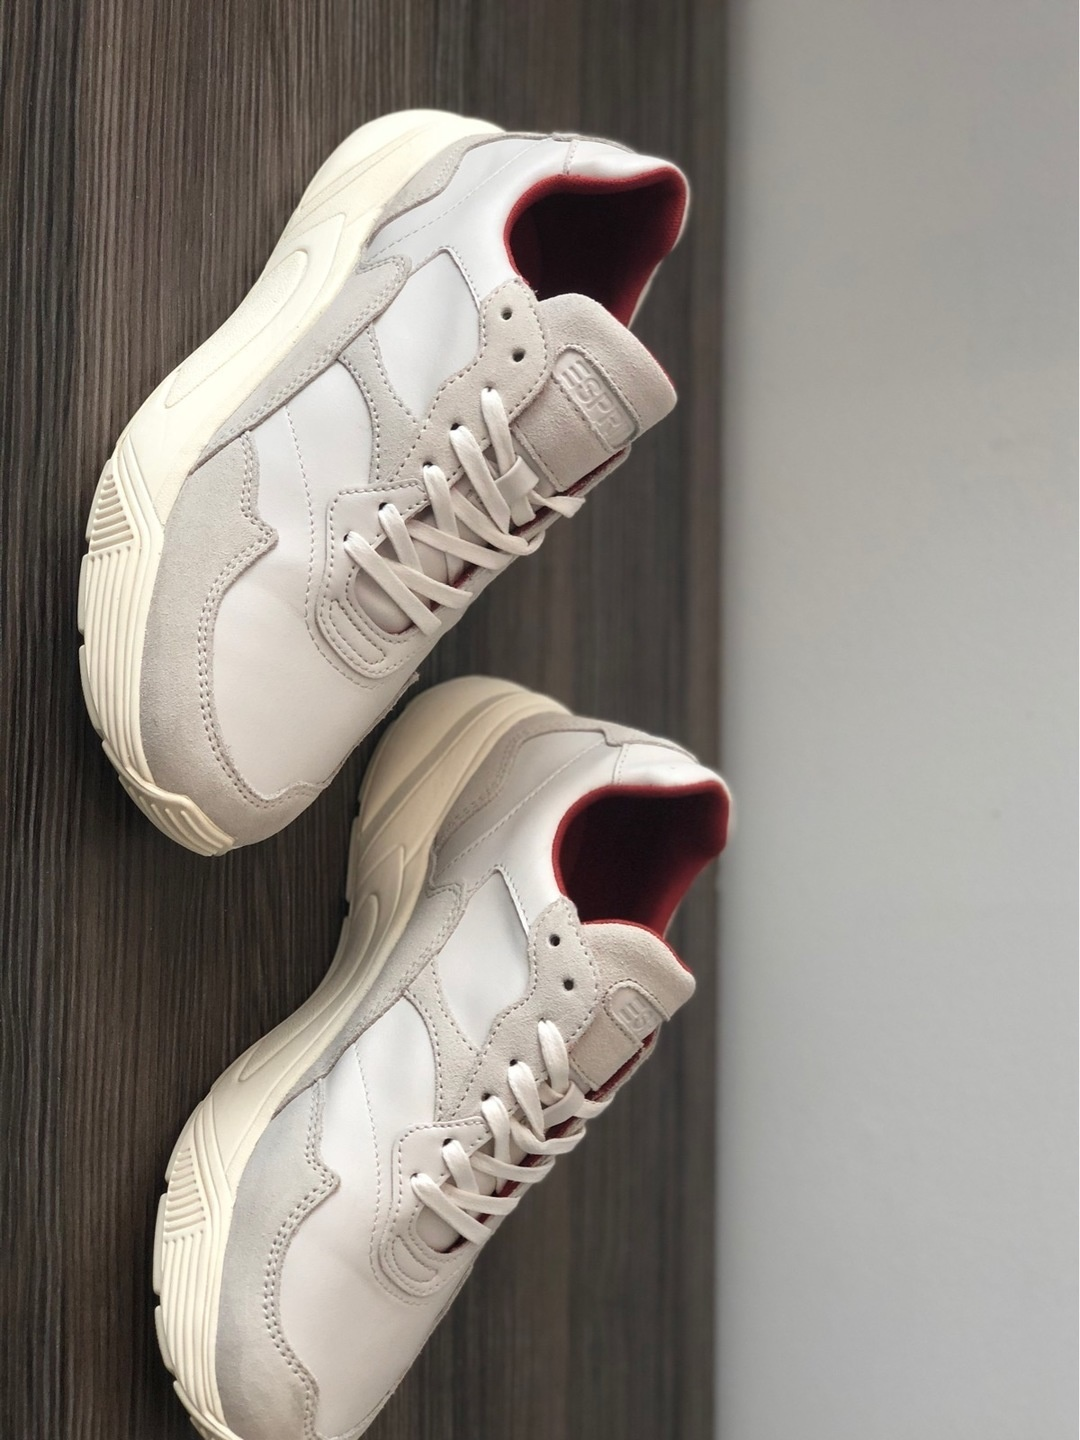 Women's sneakers - ESPRIT photo 2